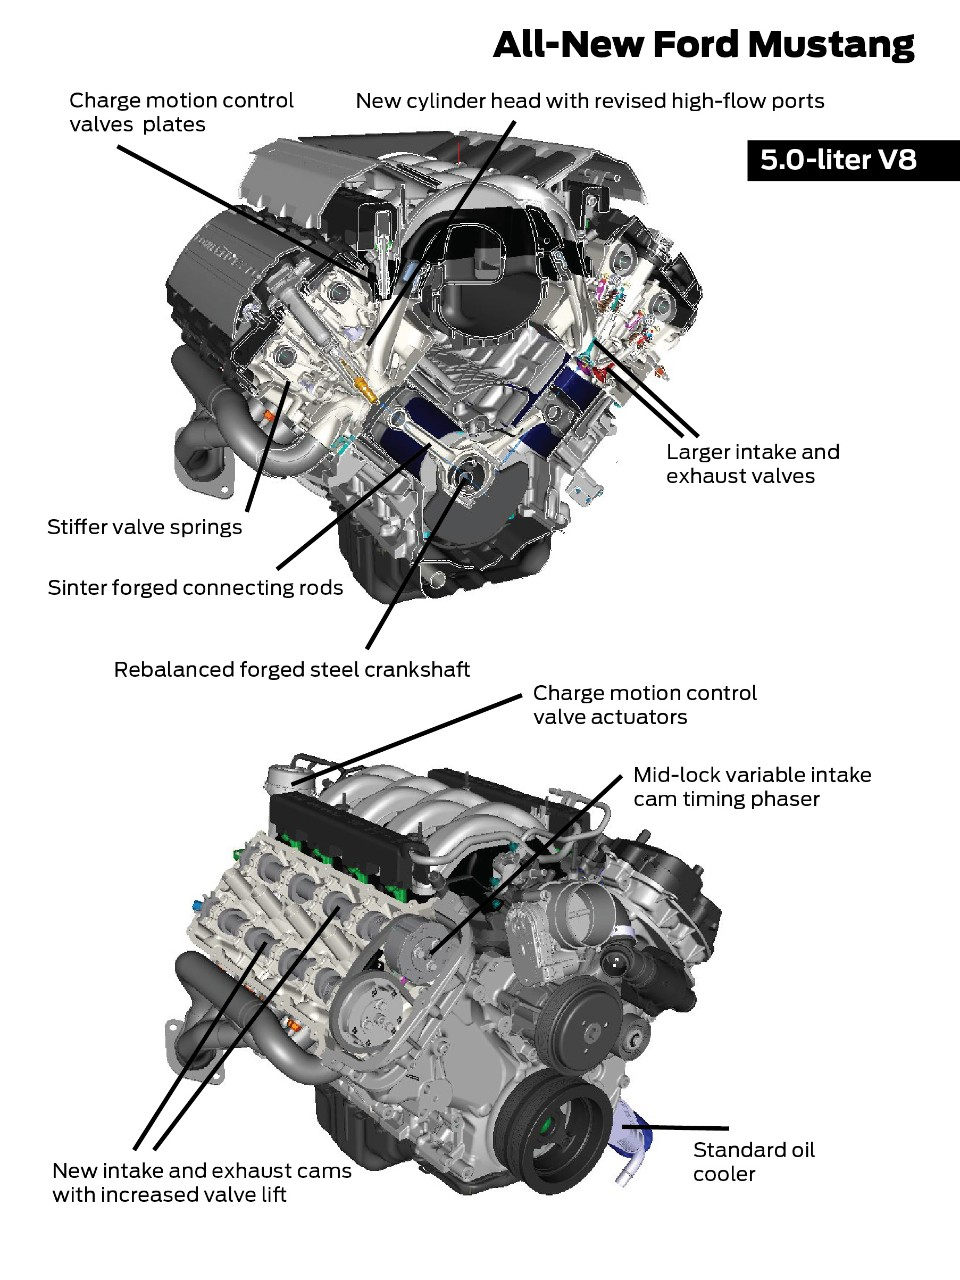 2015 Mustang Specs & Information: S550 Models, Engines, Colors & More - 2015 mustang 5.0L engine